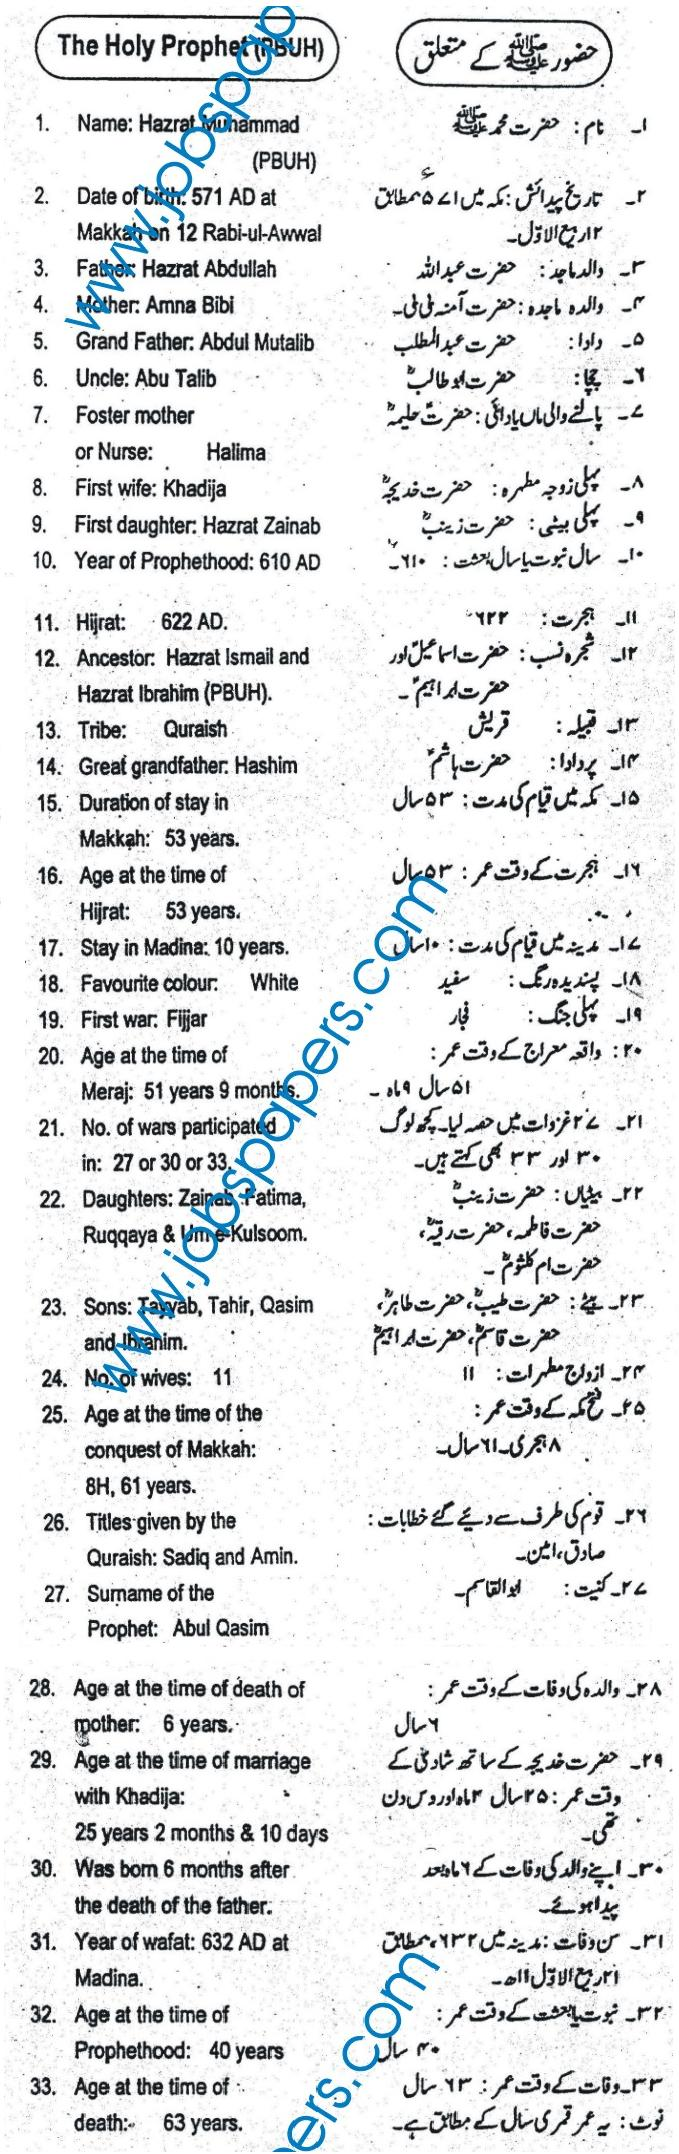 essay about hazrat muhammad pbuh Open document below is an essay on islam and the prophet mohammad (pbuh) from anti essays, your source for research papers, essays, and term paper examples.